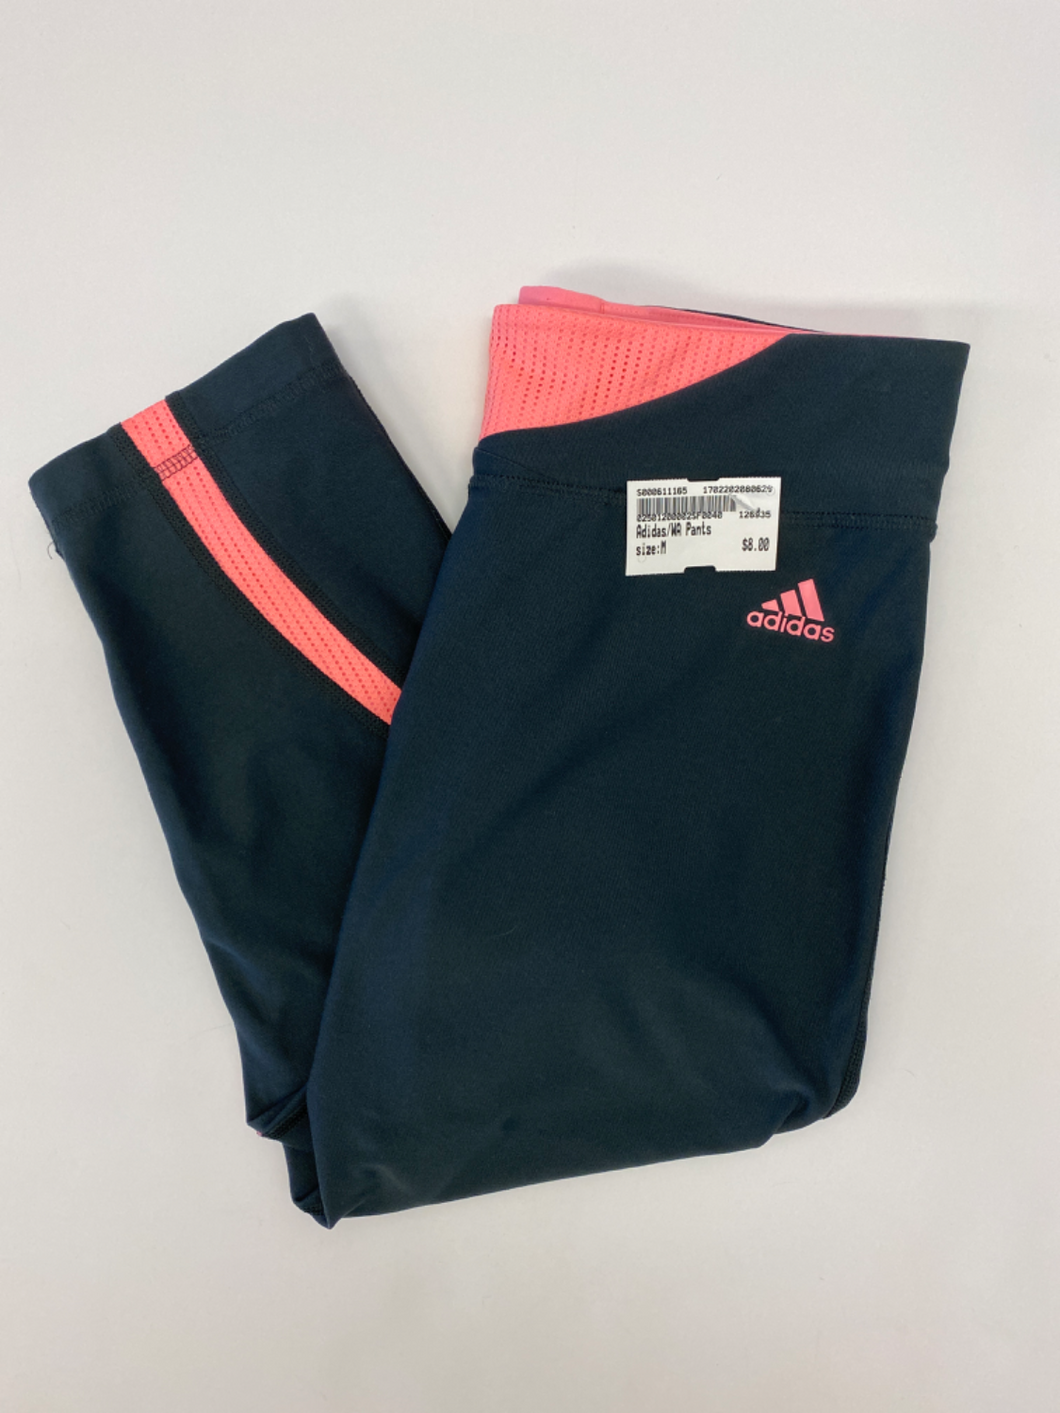 Adidas Athletic Pants Size Medium